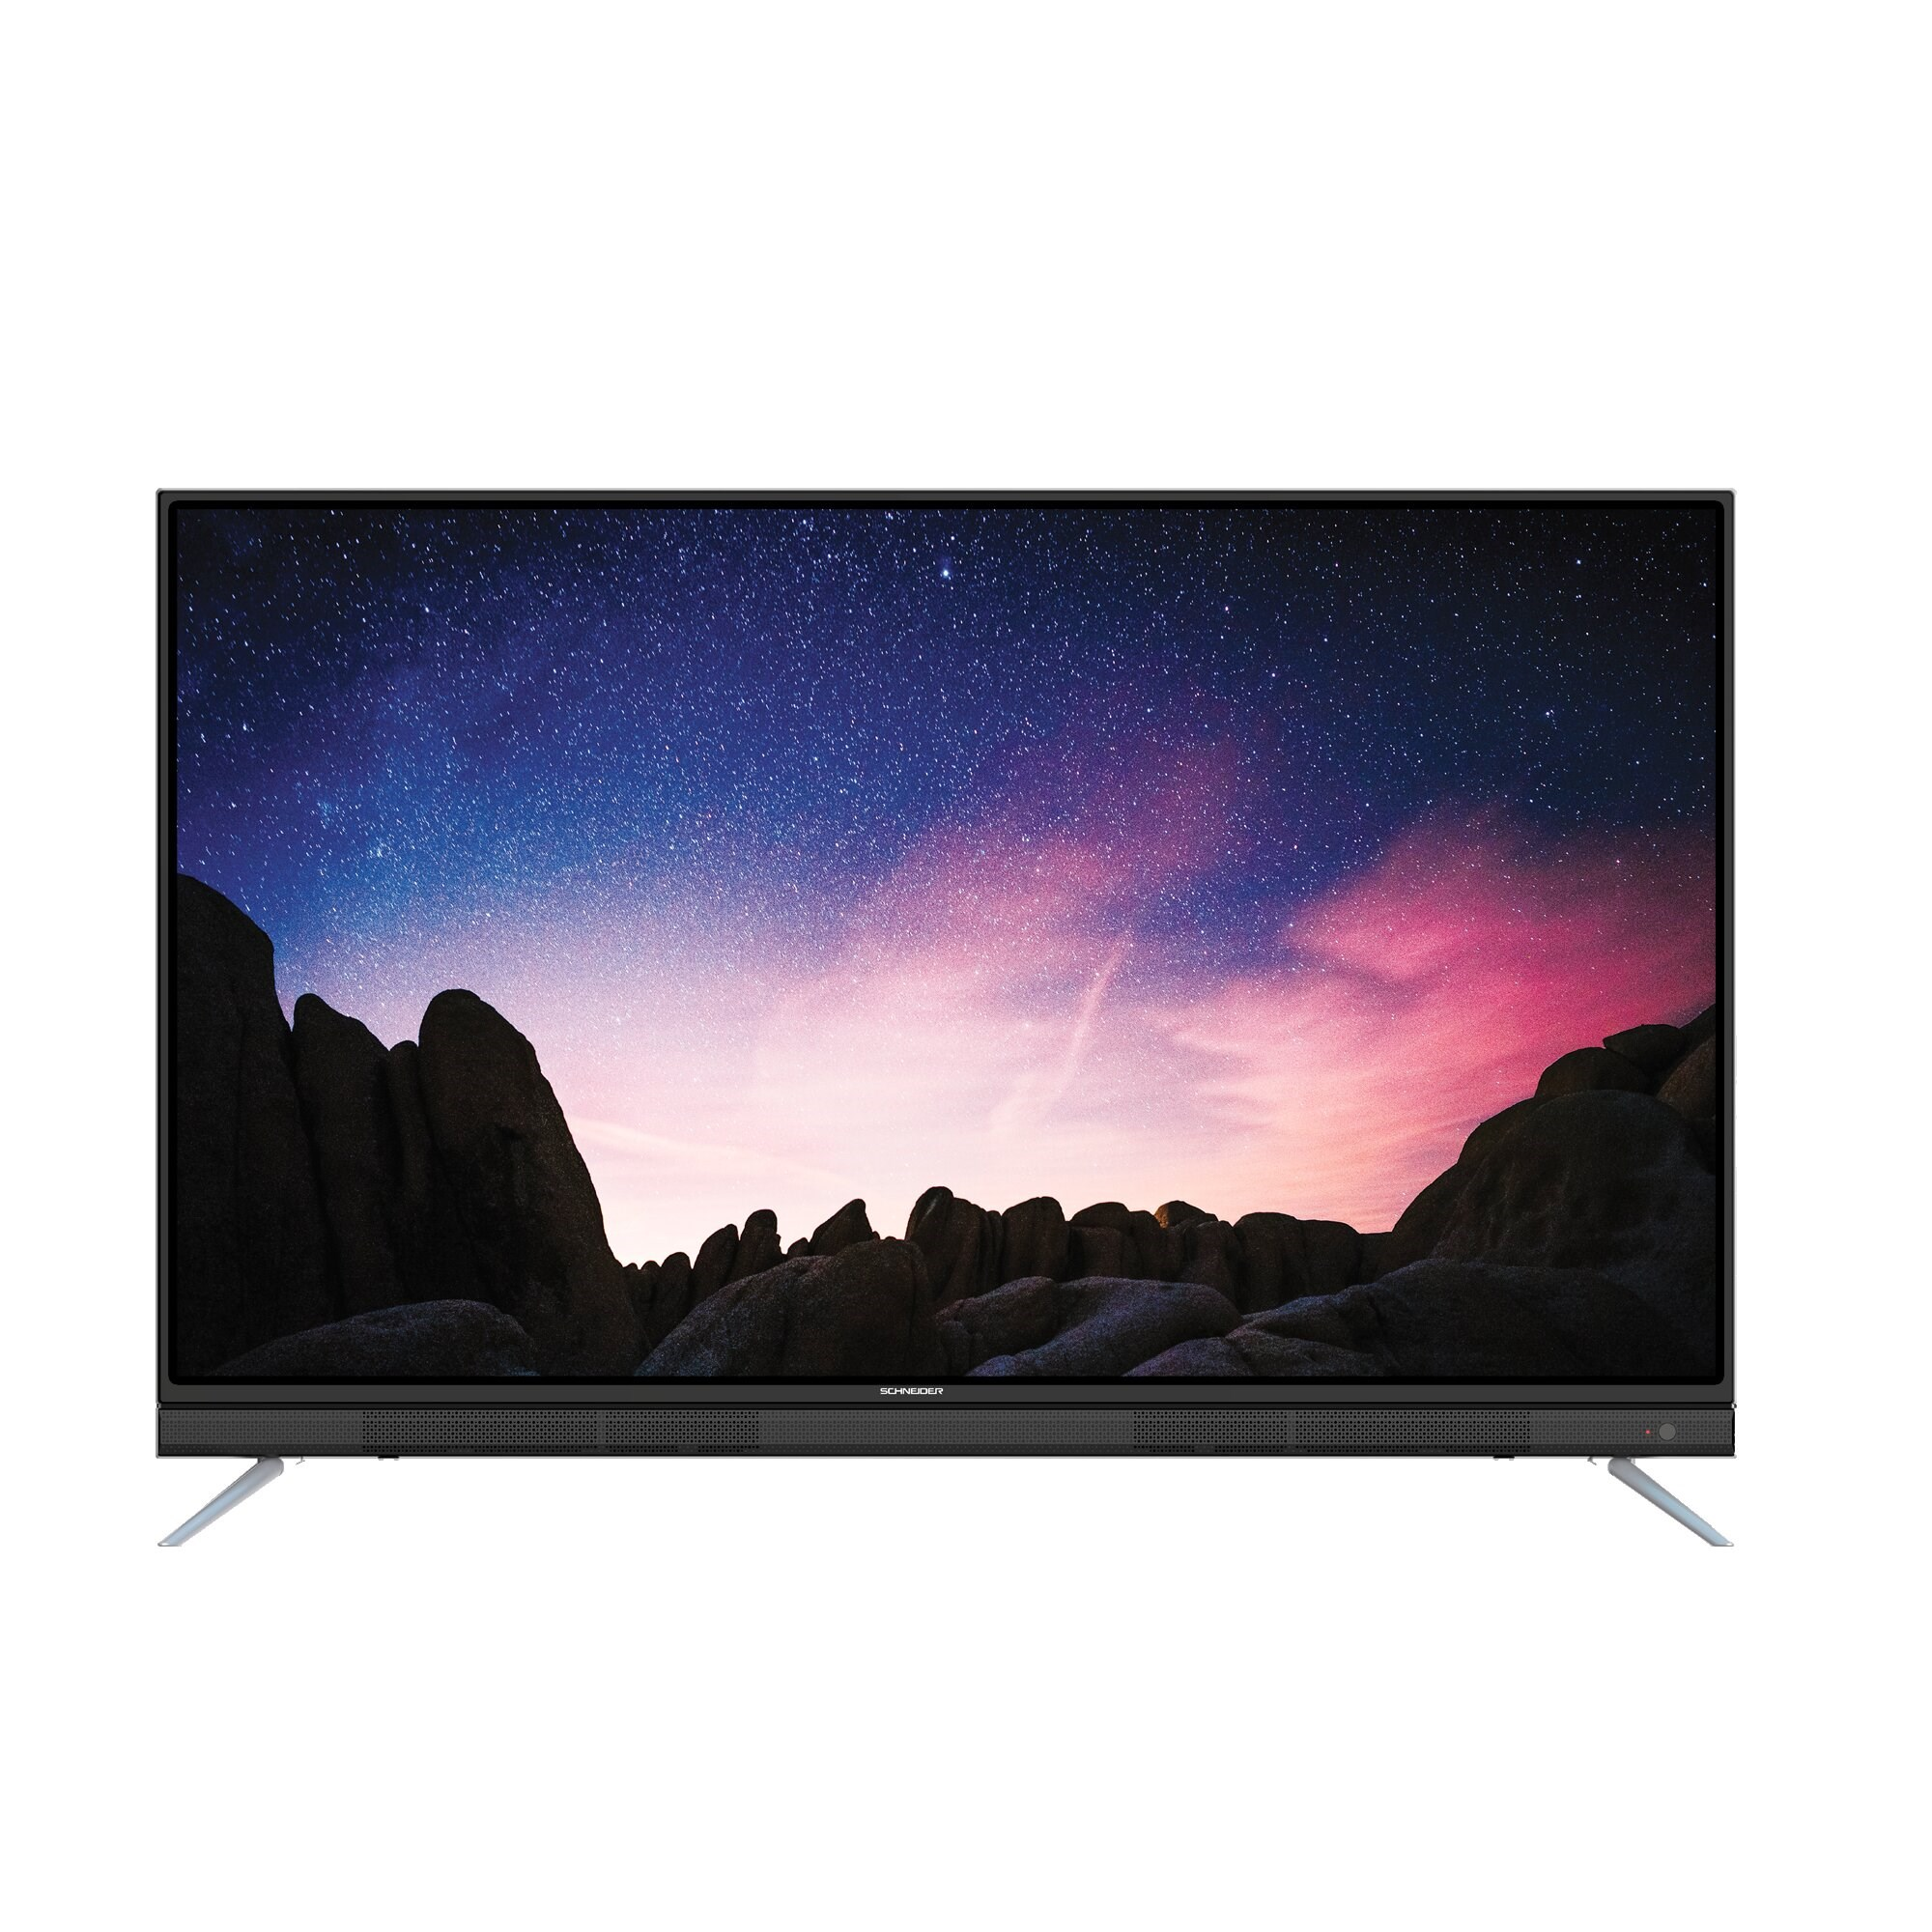 DLED TV UHD SMART 43